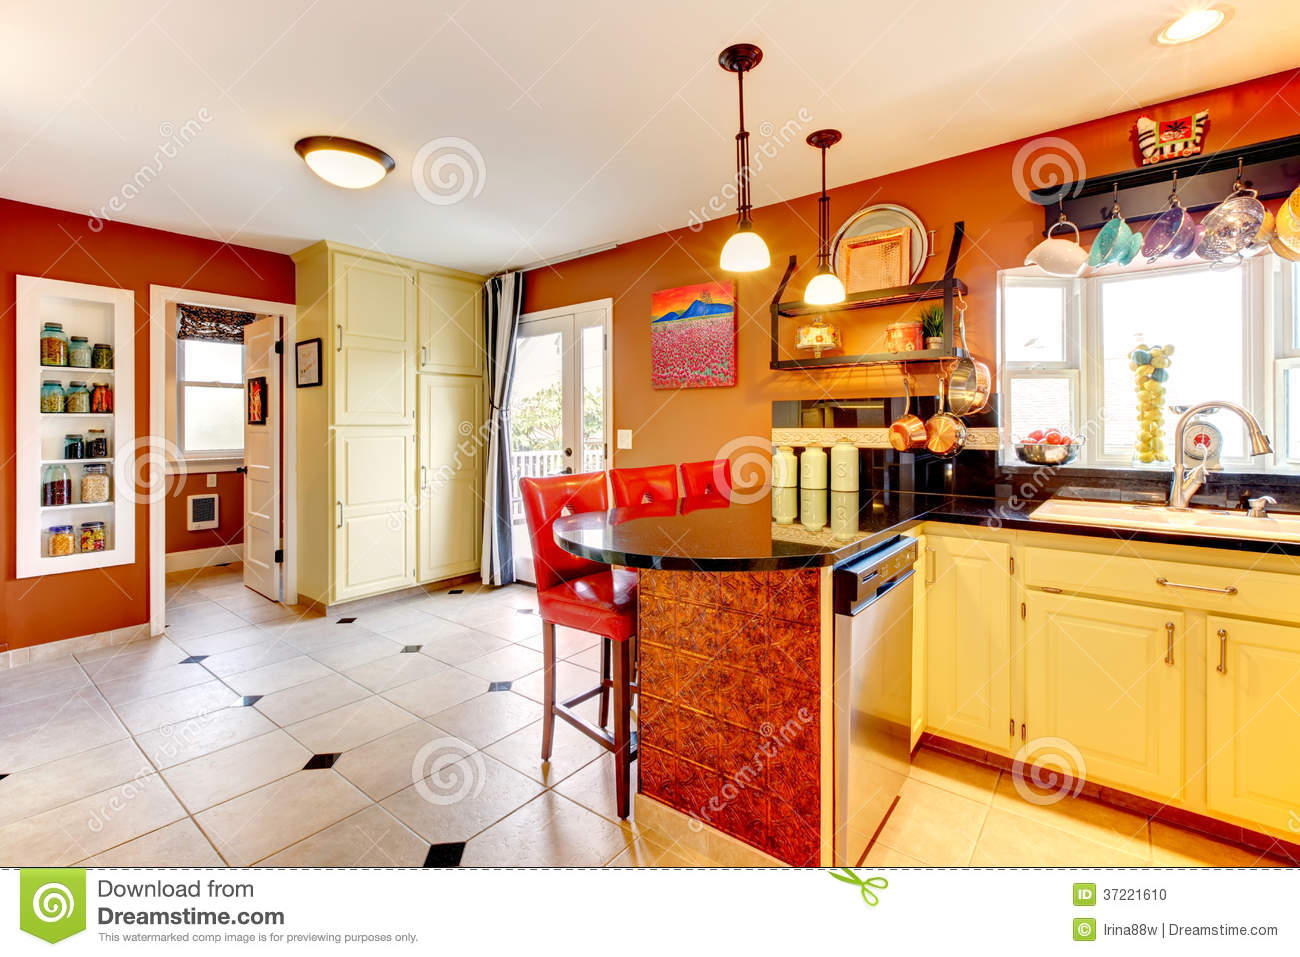 Warm Colors Cozy Kitchen Room Stock Photo  Image Of. White Kitchen Cabinets White Countertops. Italian Kitchens Cabinets. Black Kitchen Cabinet Knobs And Pulls. Kitchen Cabinet Knobs Home Depot. Ikea Kitchen Cabinet Sizes. In Style Kitchen Cabinets. Kitchen Island Cabinets Base. White Shiny Kitchen Cabinets